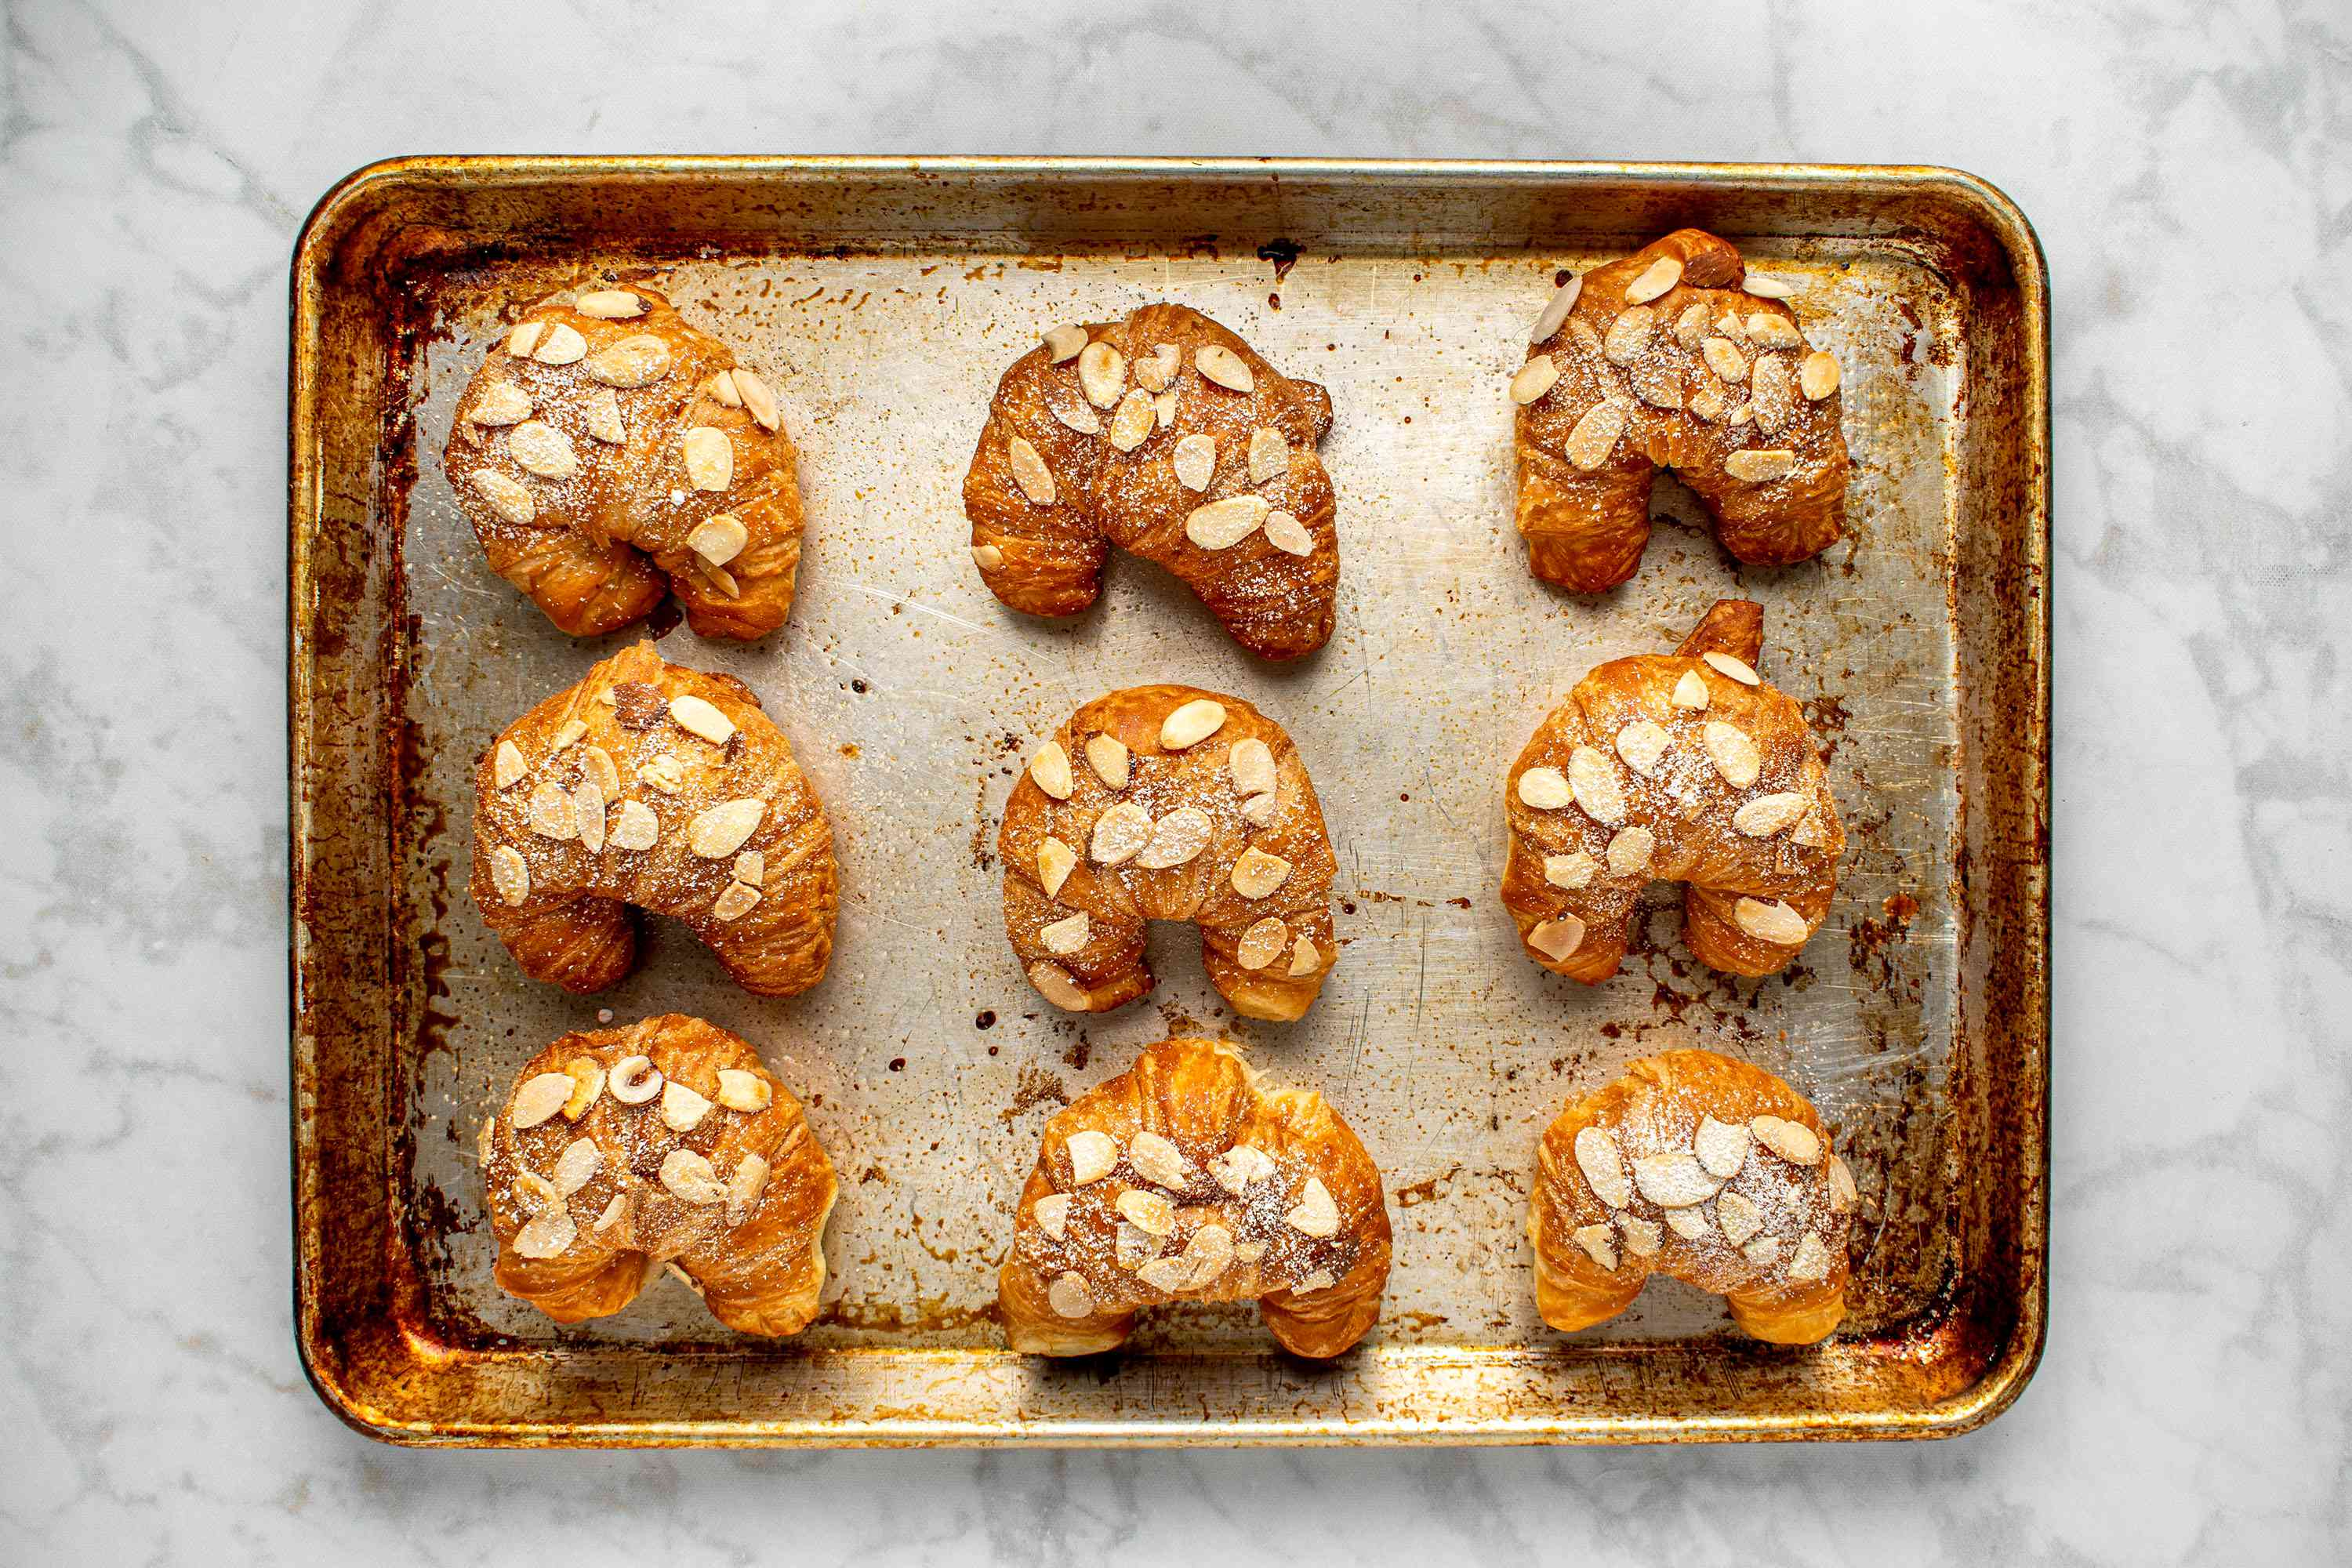 Classic French Almond Croissants topped with sugar on a baking sheet